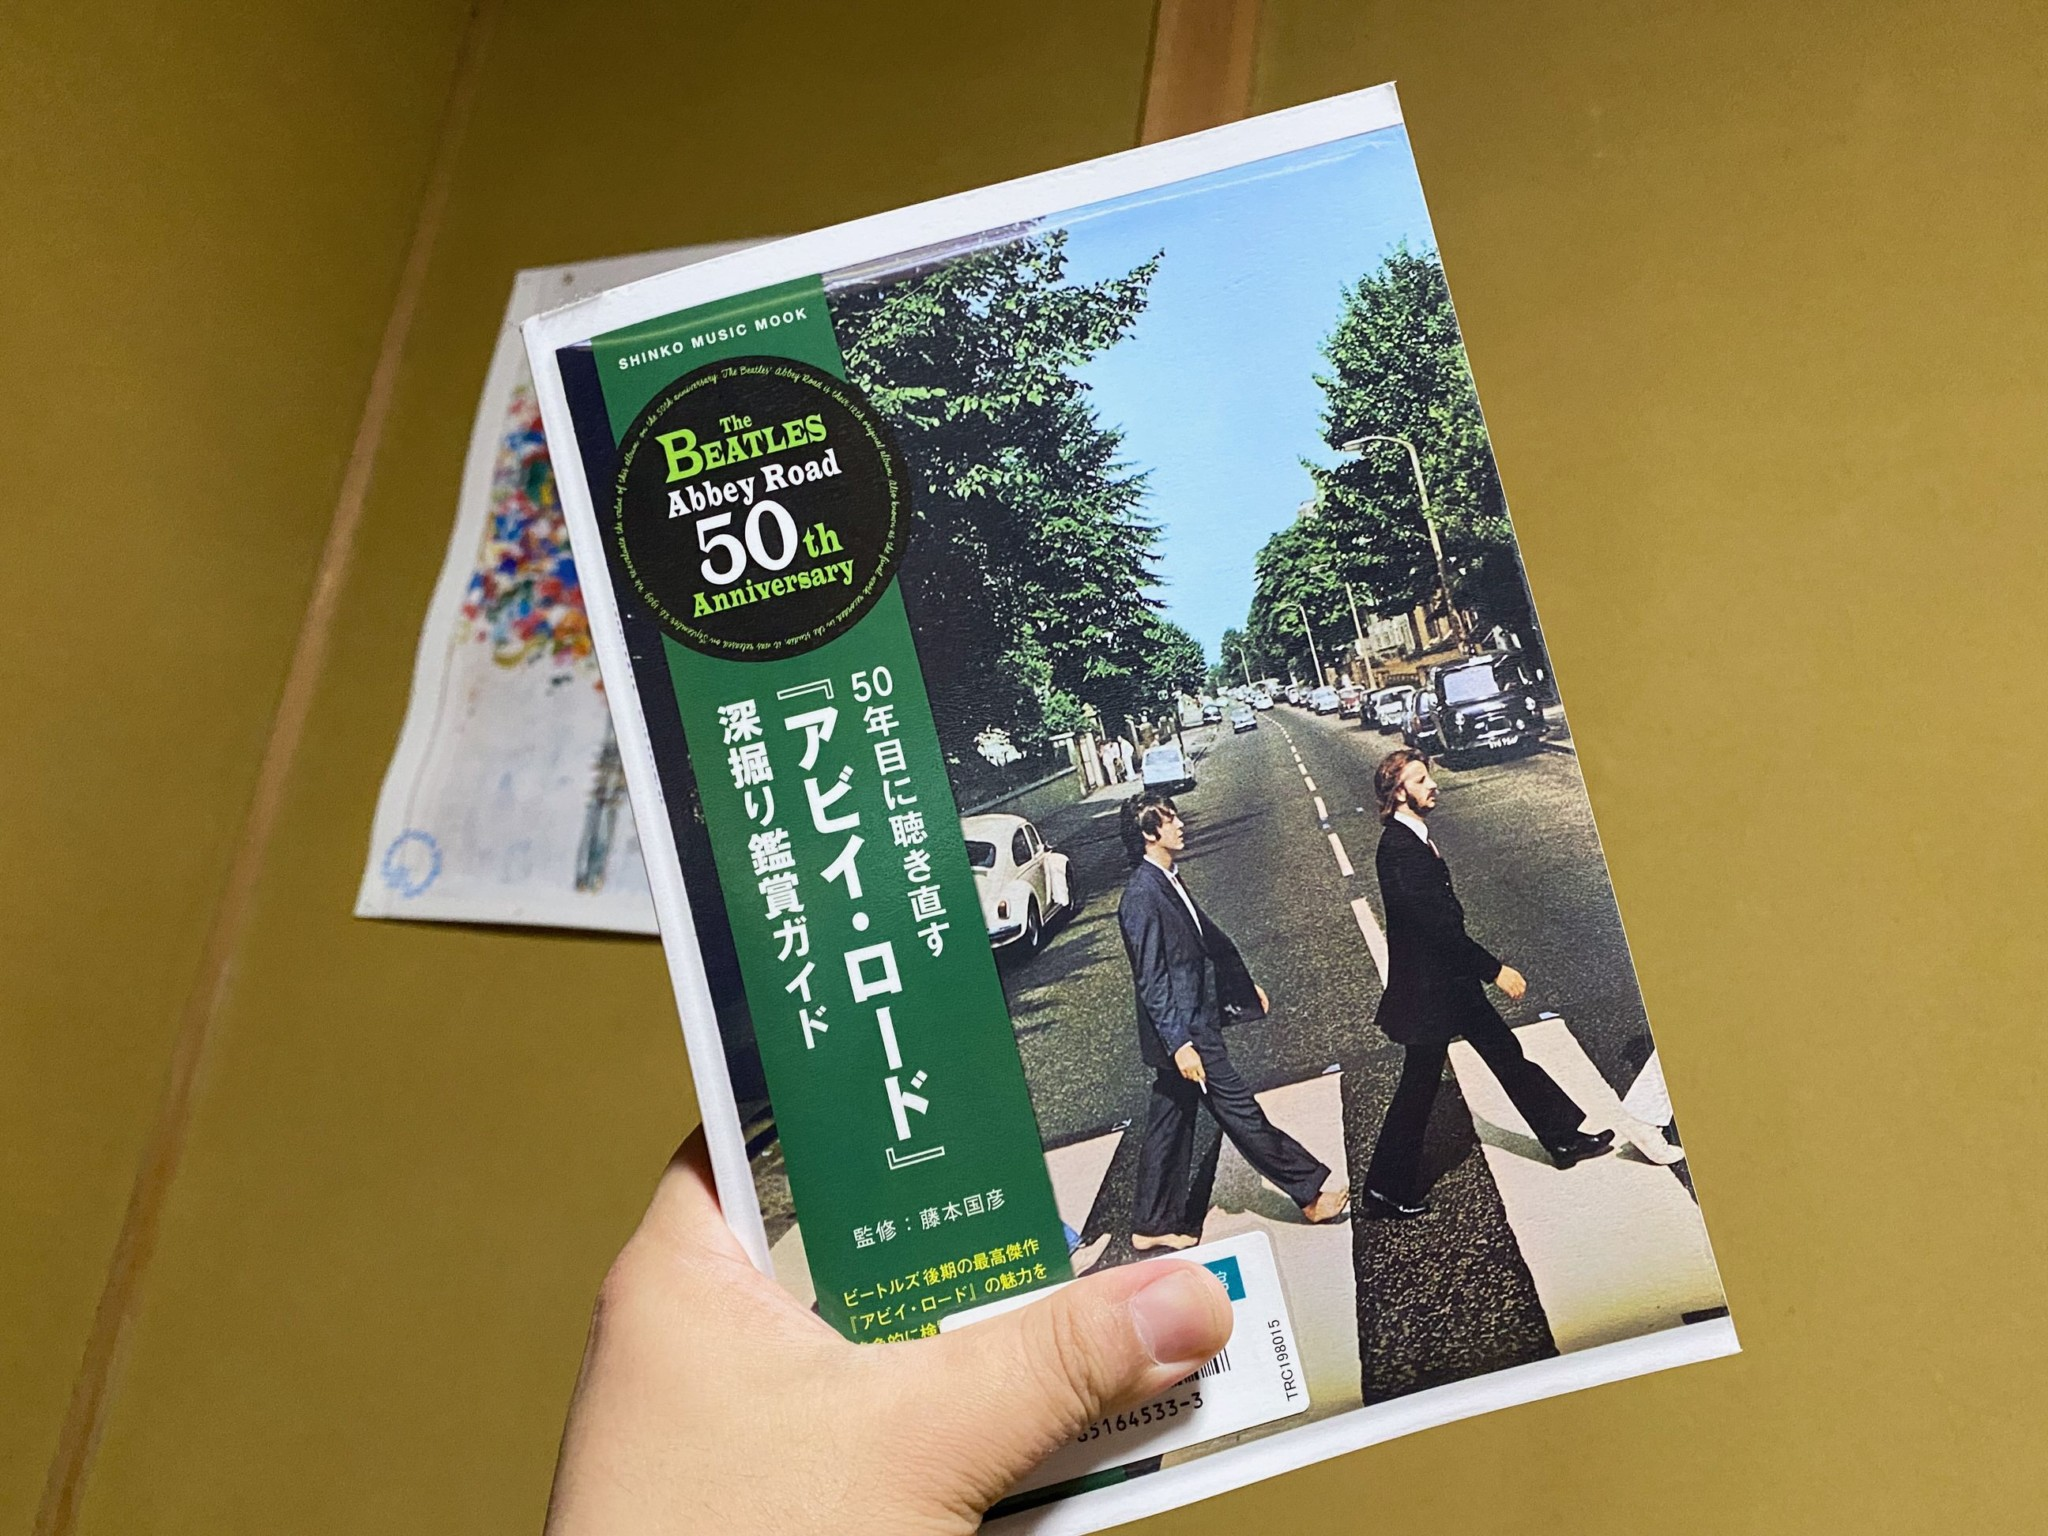 abbey road 50thbook